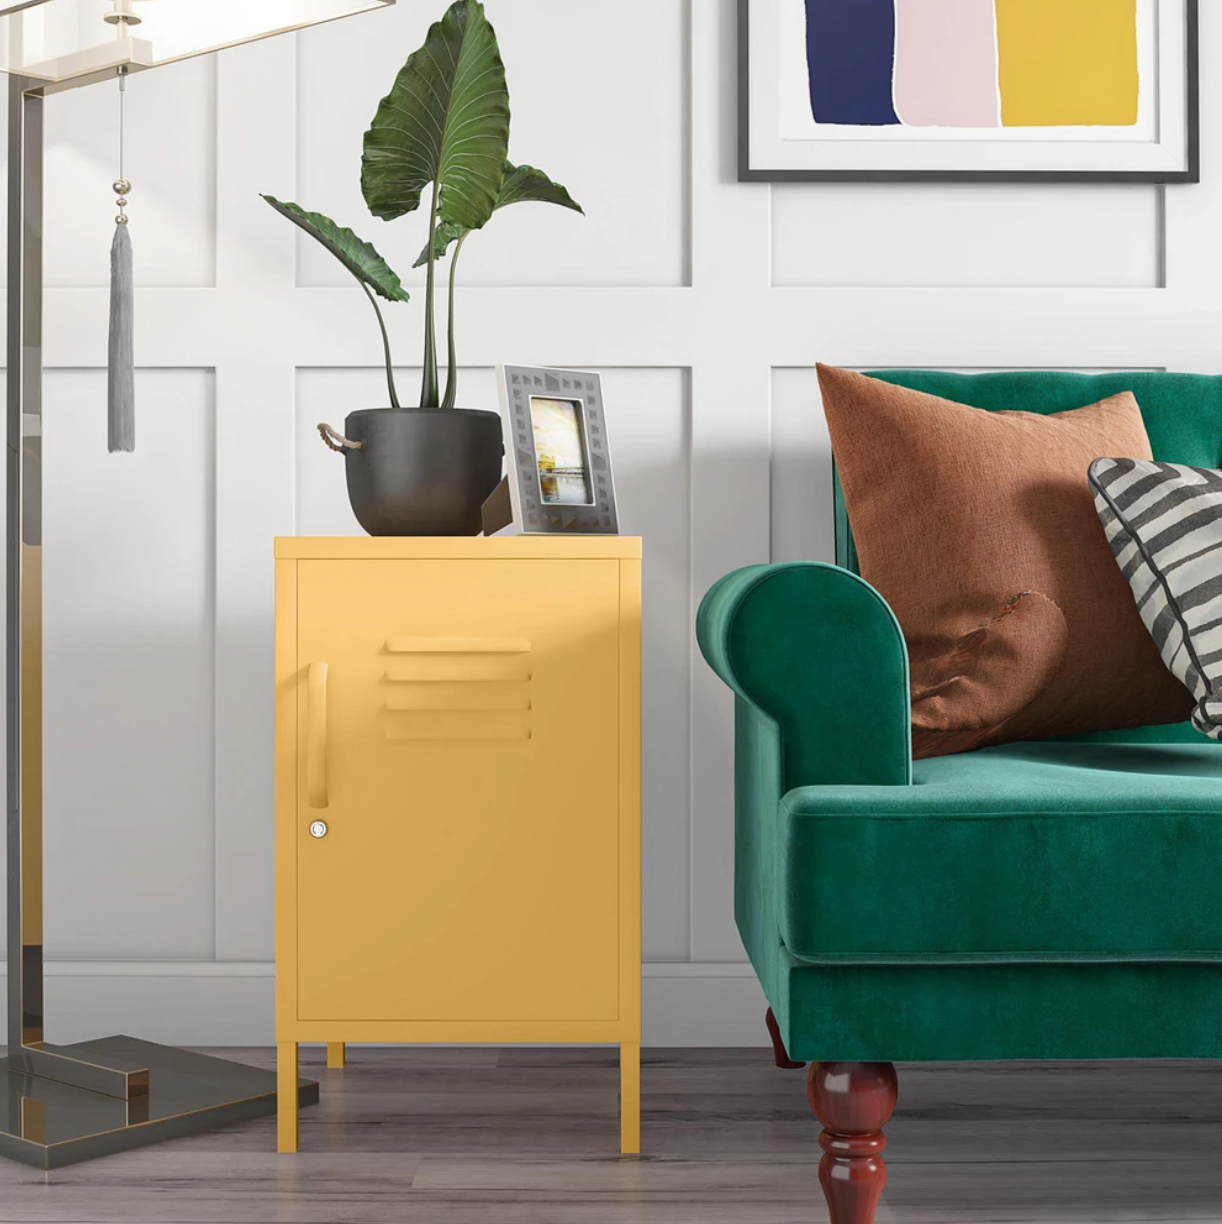 the yellow locker end table next to a couch with a picture frame and plant on top